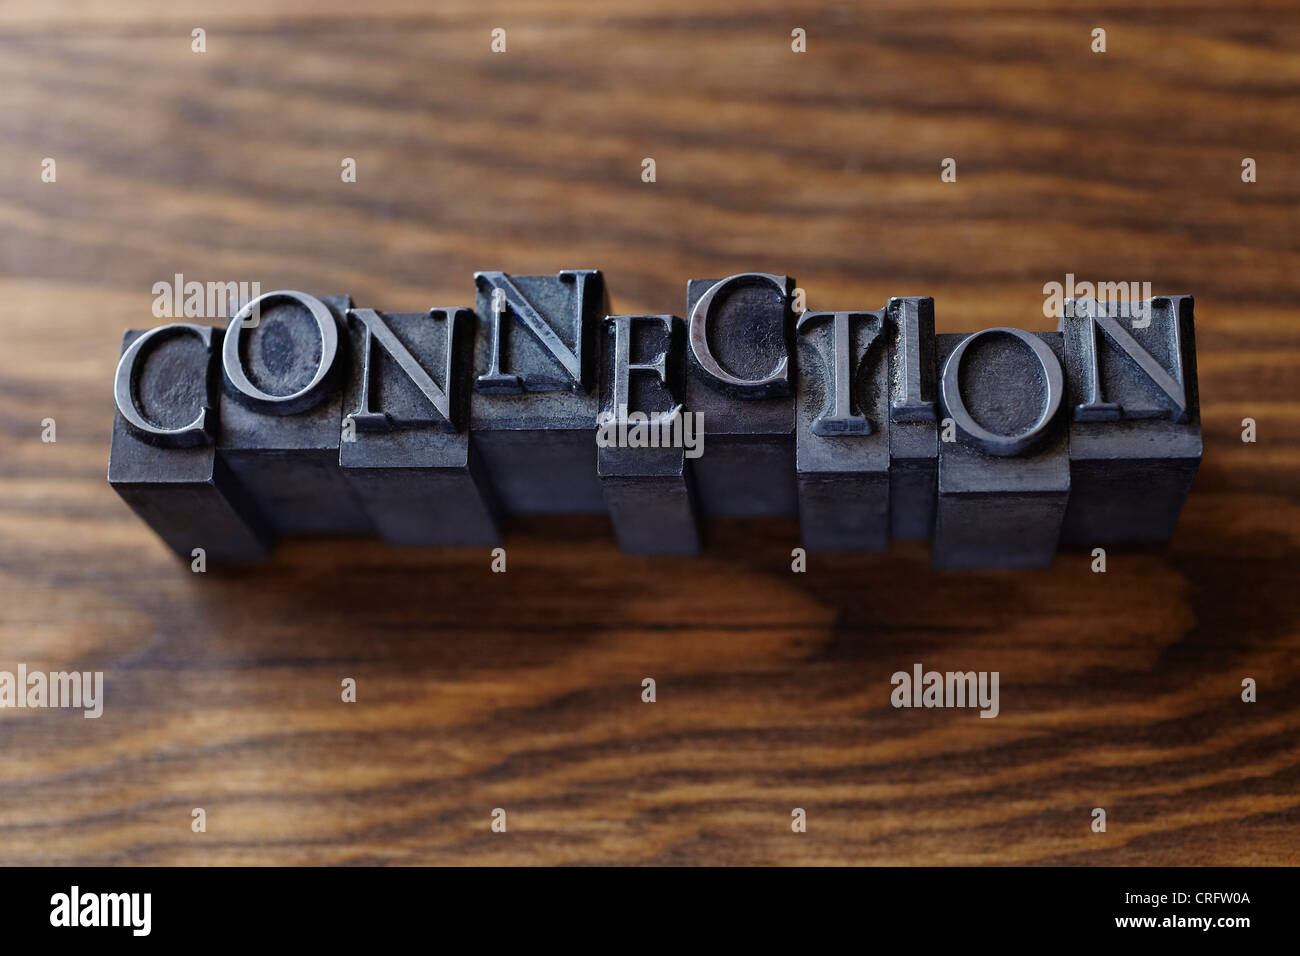 Lead type spelling 'connection' - Stock Image